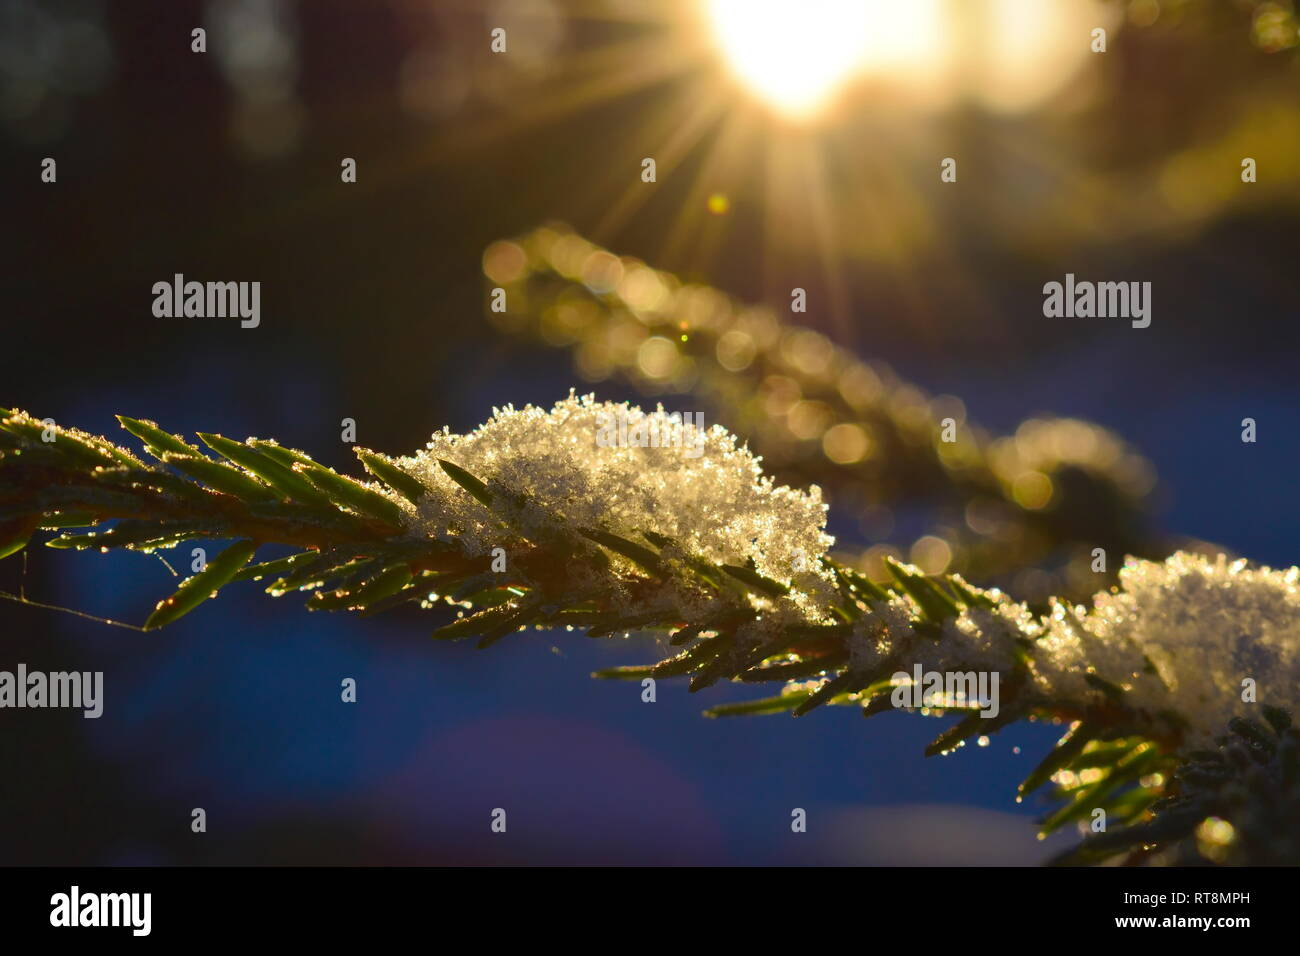 Close up of snowflakes resting on a spruce twig, illuminated by the low golden winter sun in northern Sweden. Stock Photo